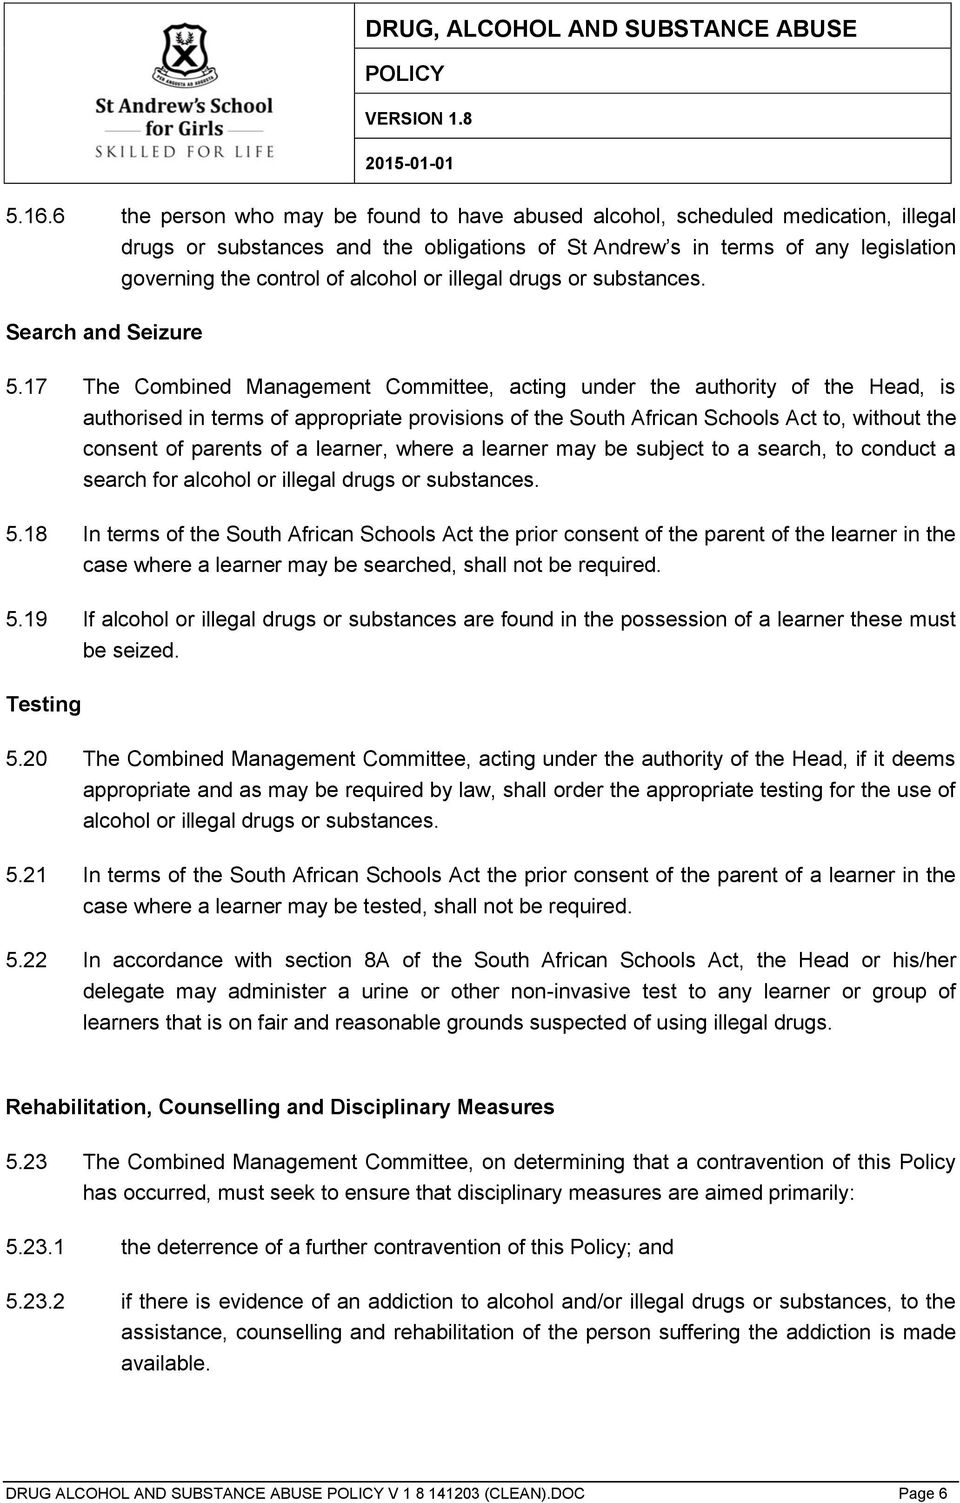 17 The Combined Management Committee, acting under the authority of the Head, is authorised in terms of appropriate provisions of the South African Schools Act to, without the consent of parents of a